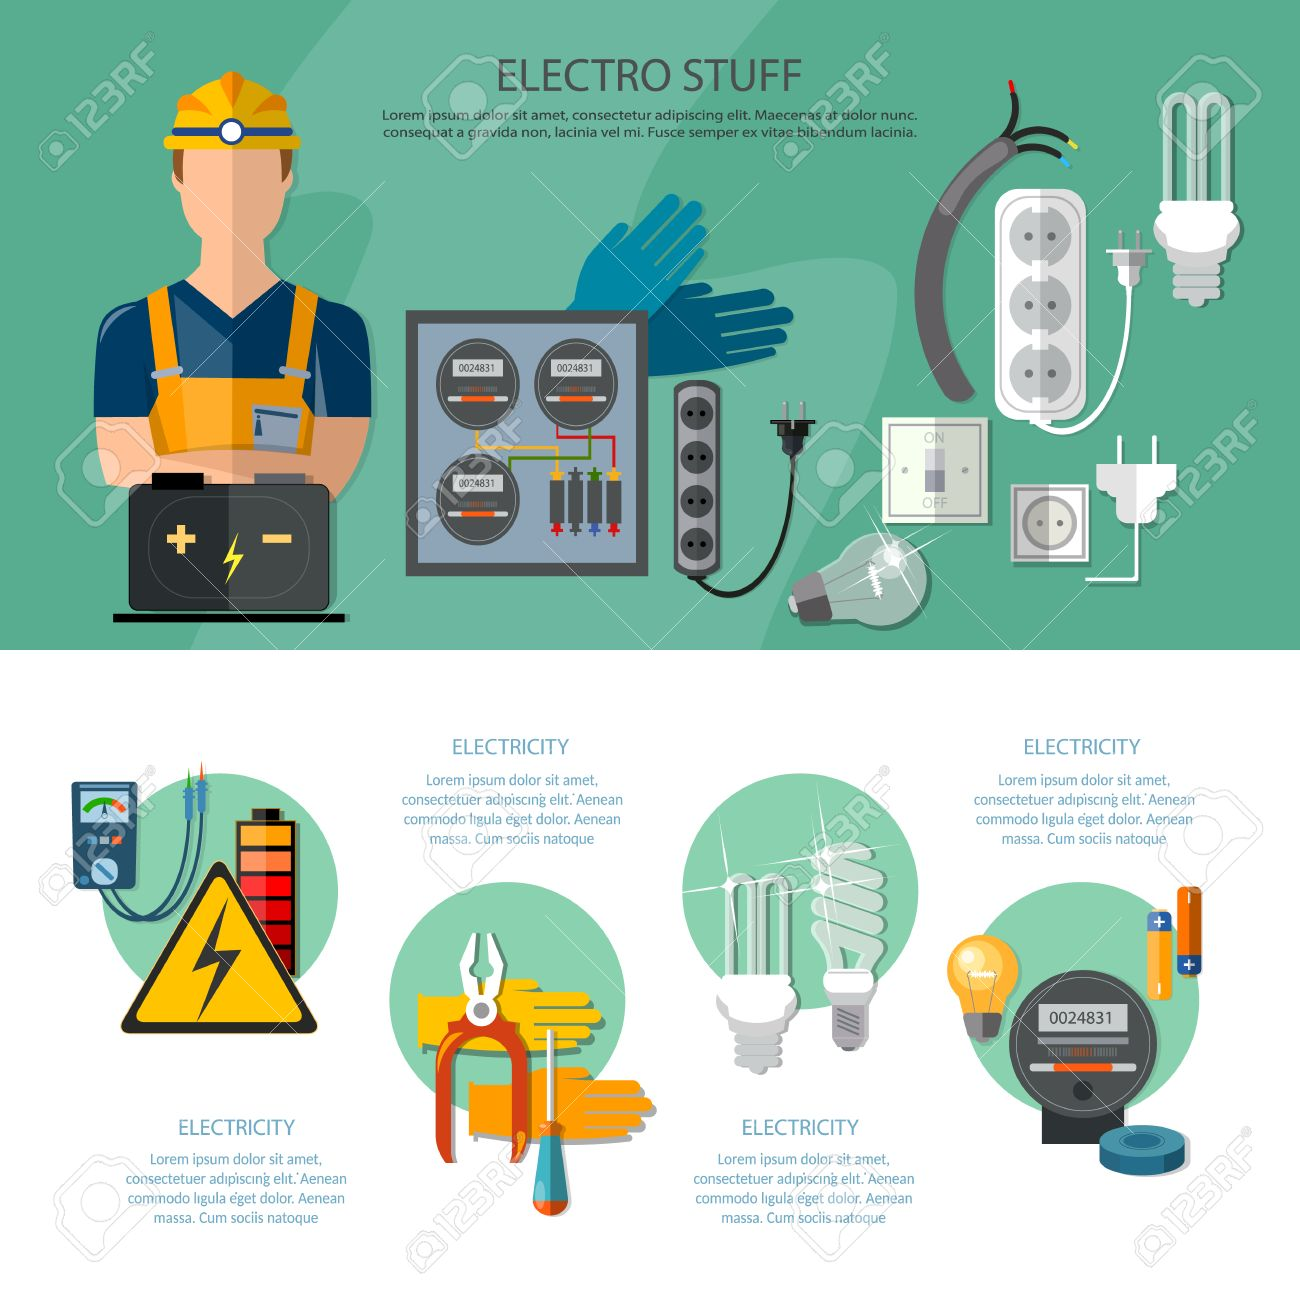 Professional Electrician Infographics Electricity Tools Installation And Repair Electrical Equipment Illustration Stock Vector